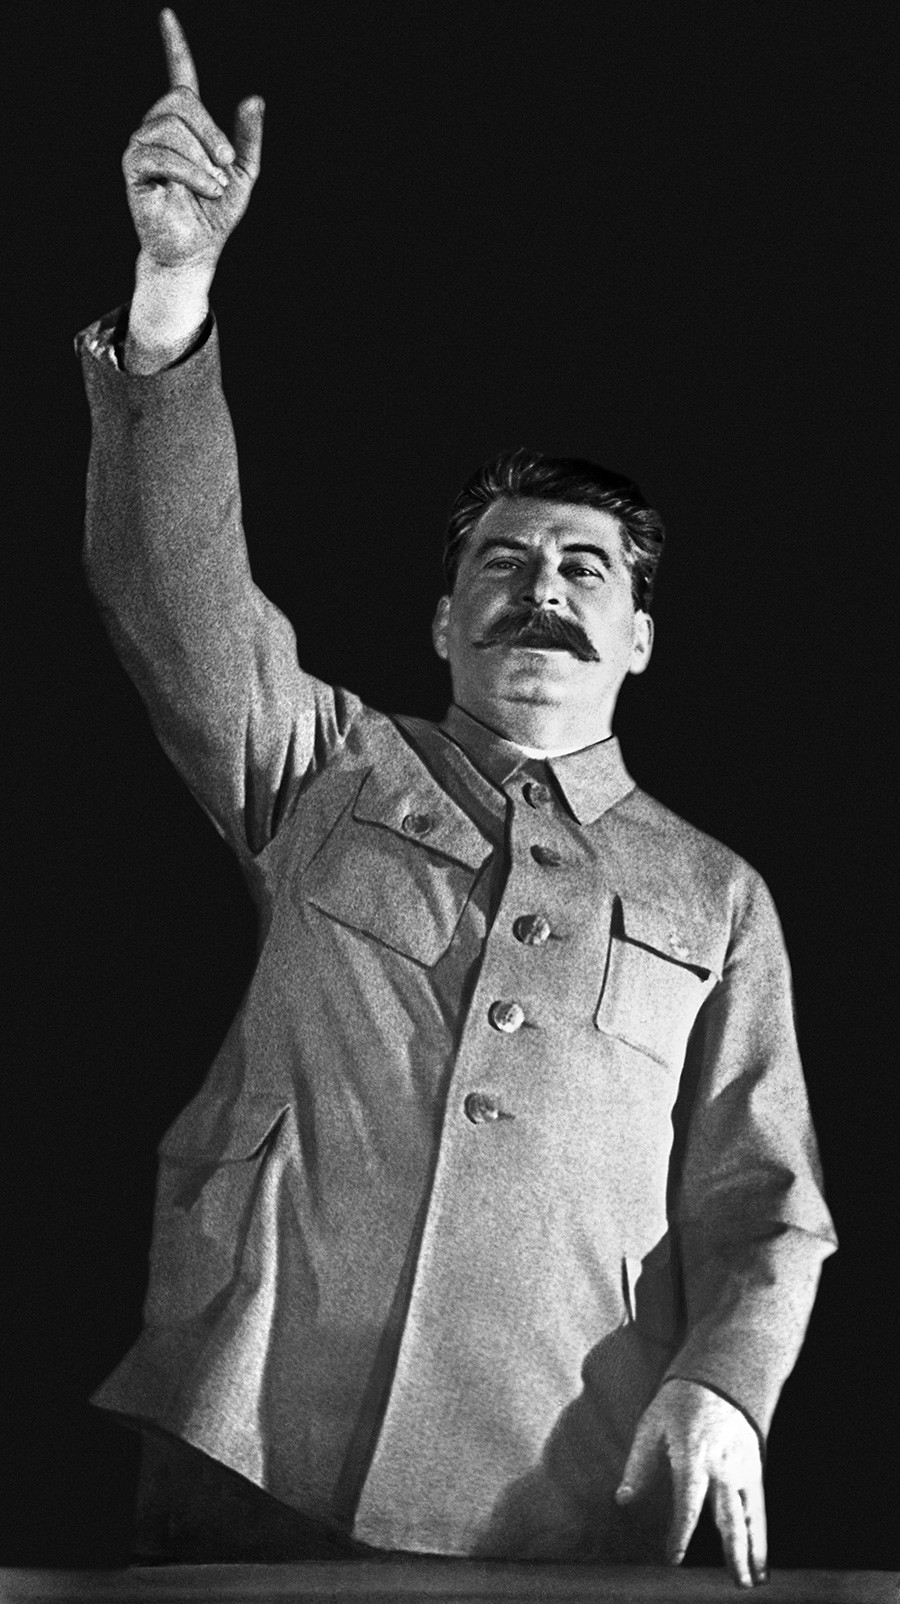 In the 1920s, Stalin was dressed in a quasi-military gray tunic with a stand-up collar and four pockets.